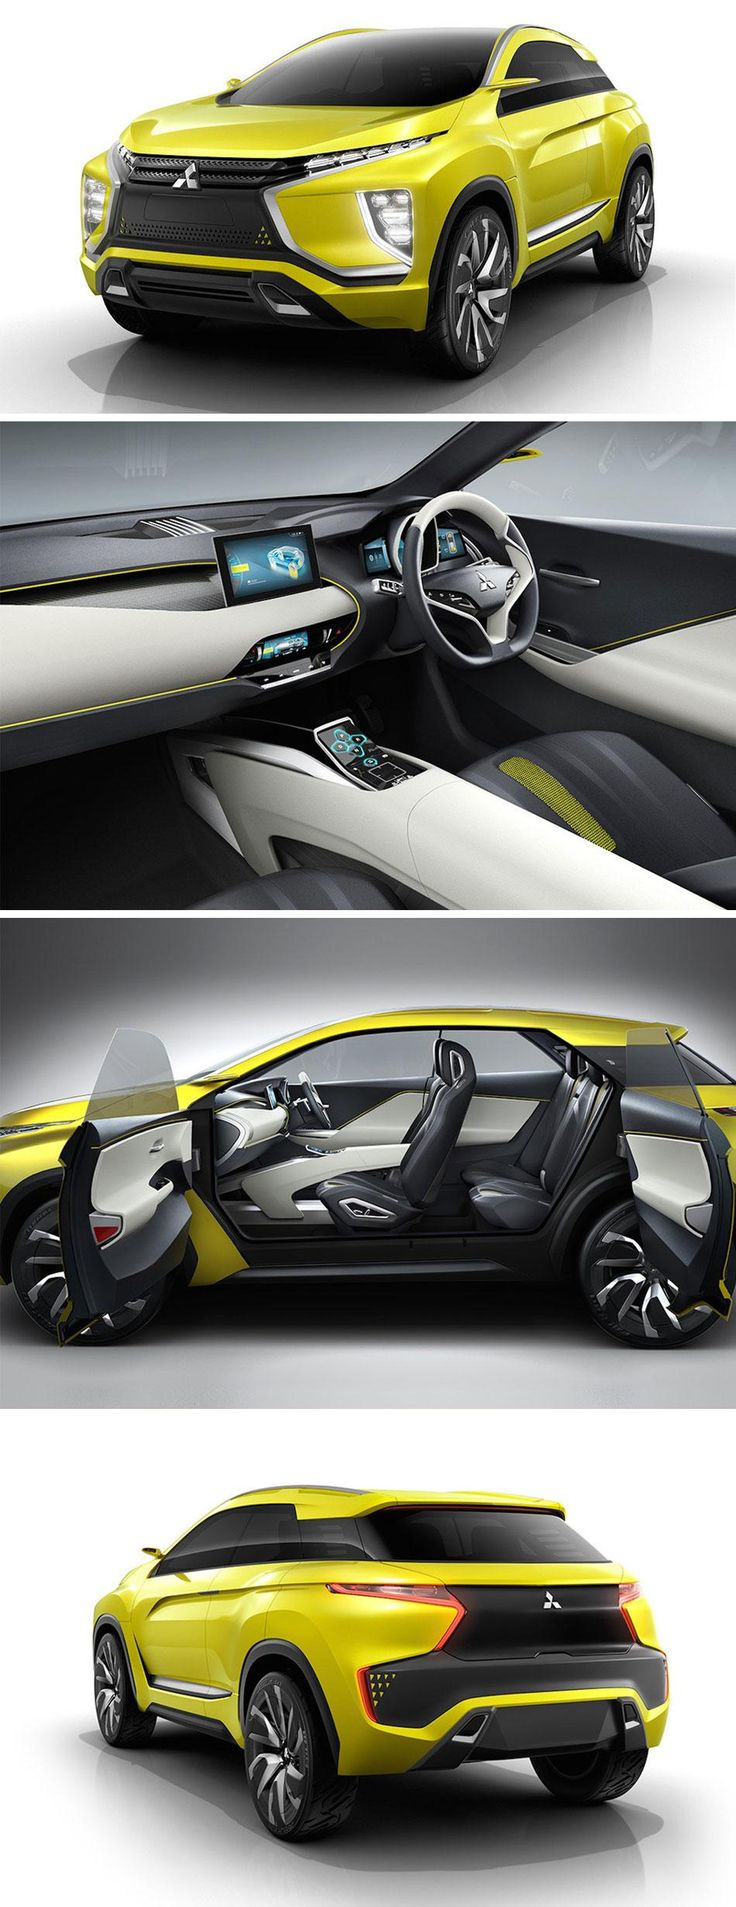 Mitsubishi's new concept car, the eX Concept features an augmented reality windshield